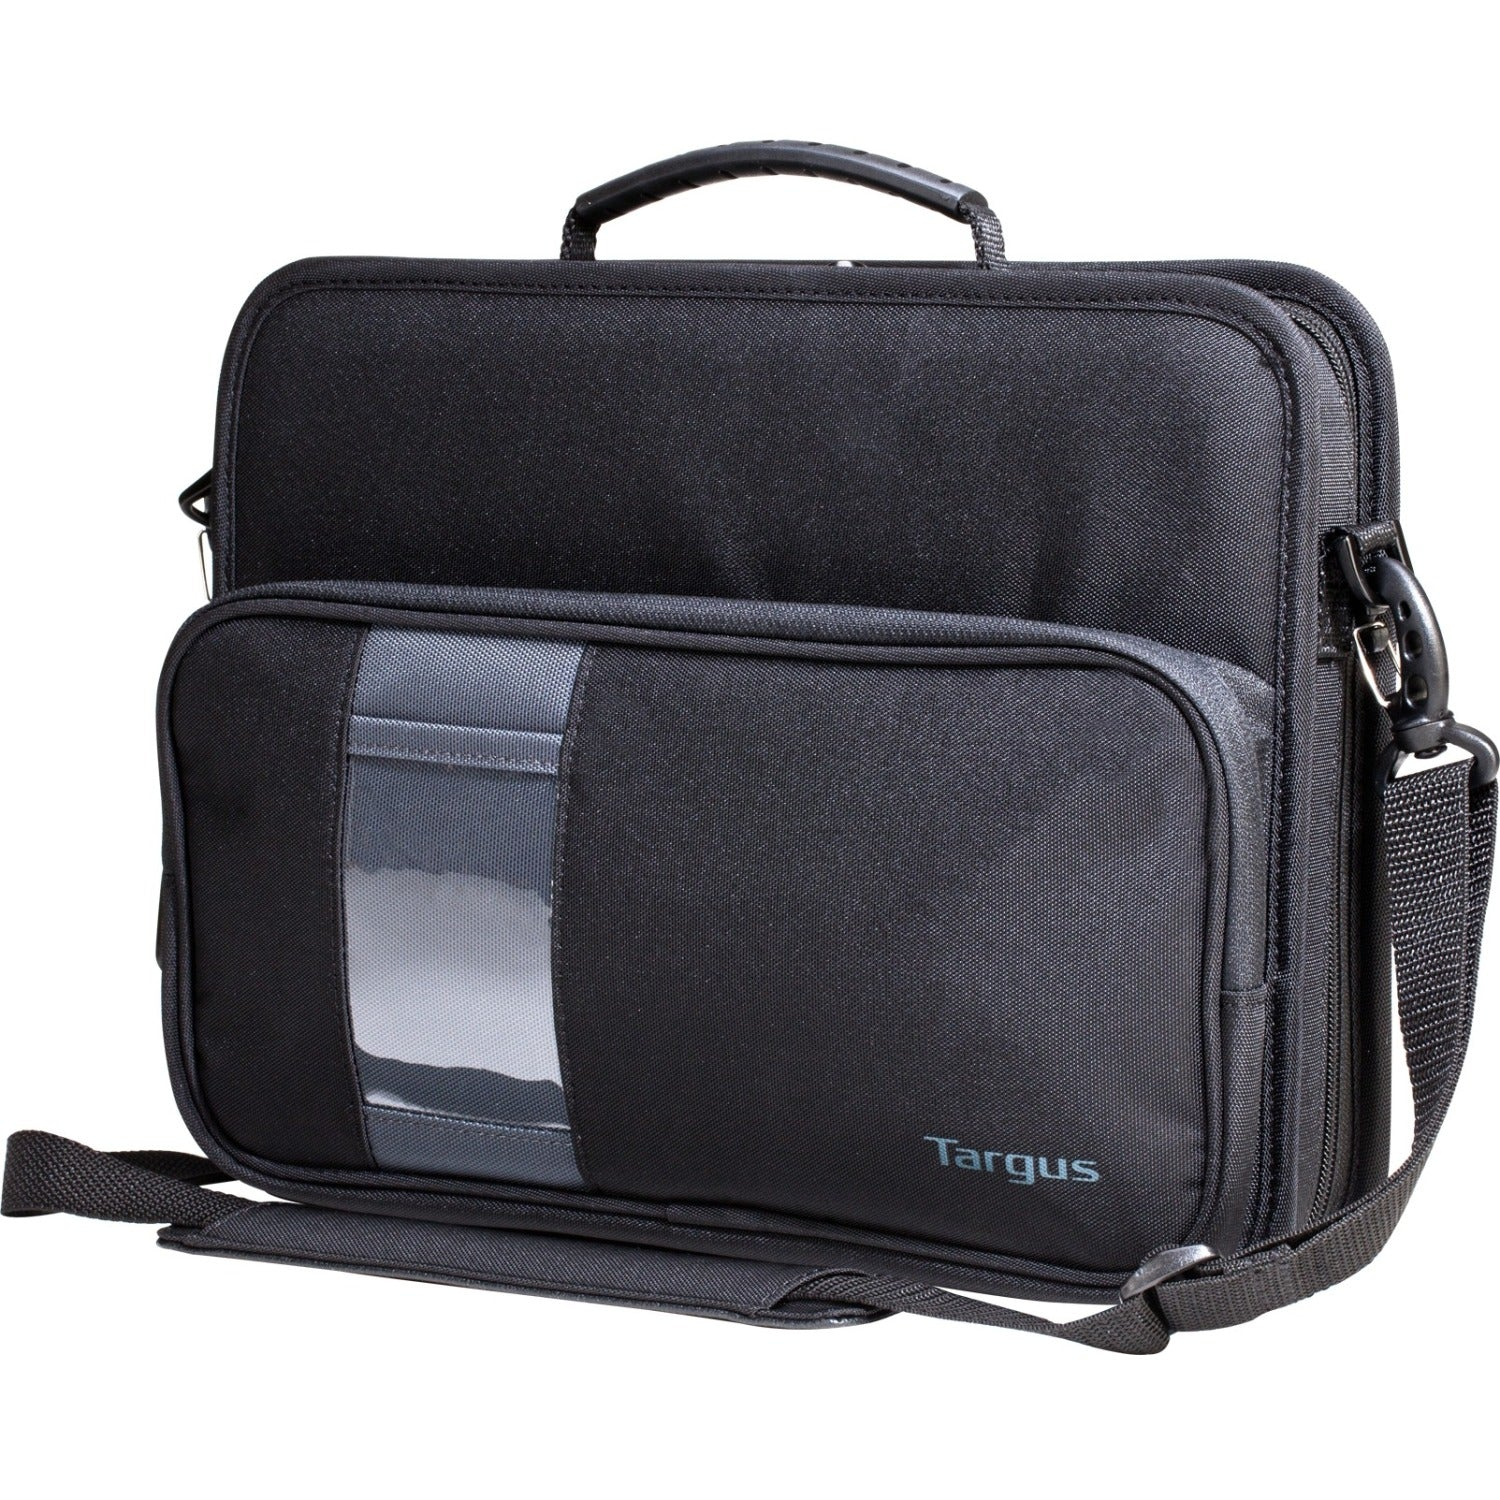 "Targus TKC001 Carrying Case (Messenger) for 11.6"" Notebook - Black"